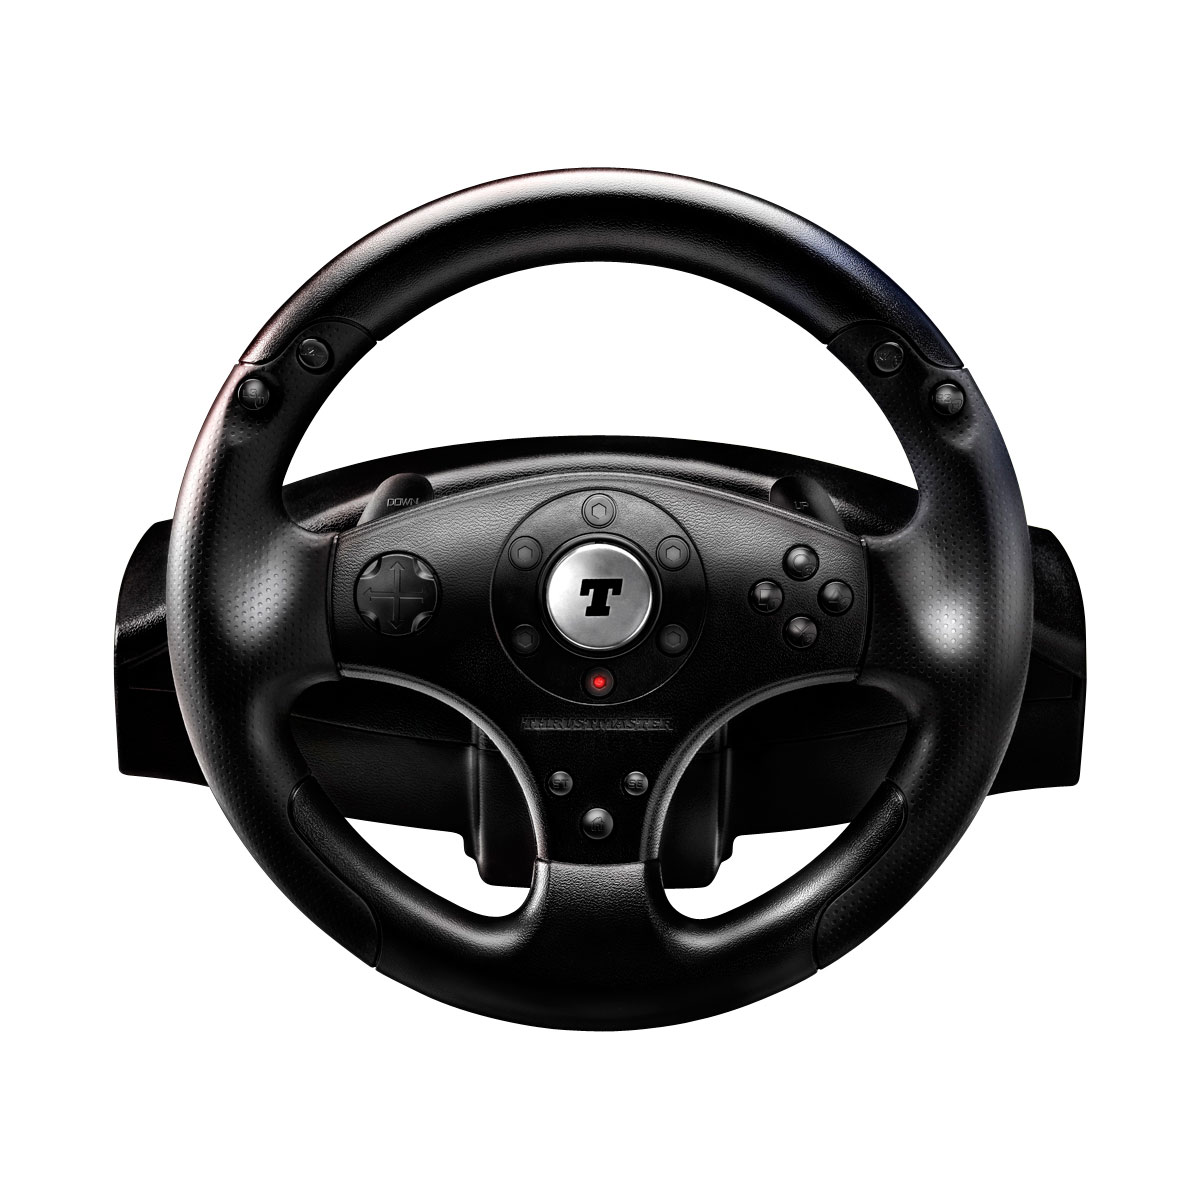 thrustmaster t100 force feedback racing wheel volant pc thrustmaster sur ldlc. Black Bedroom Furniture Sets. Home Design Ideas